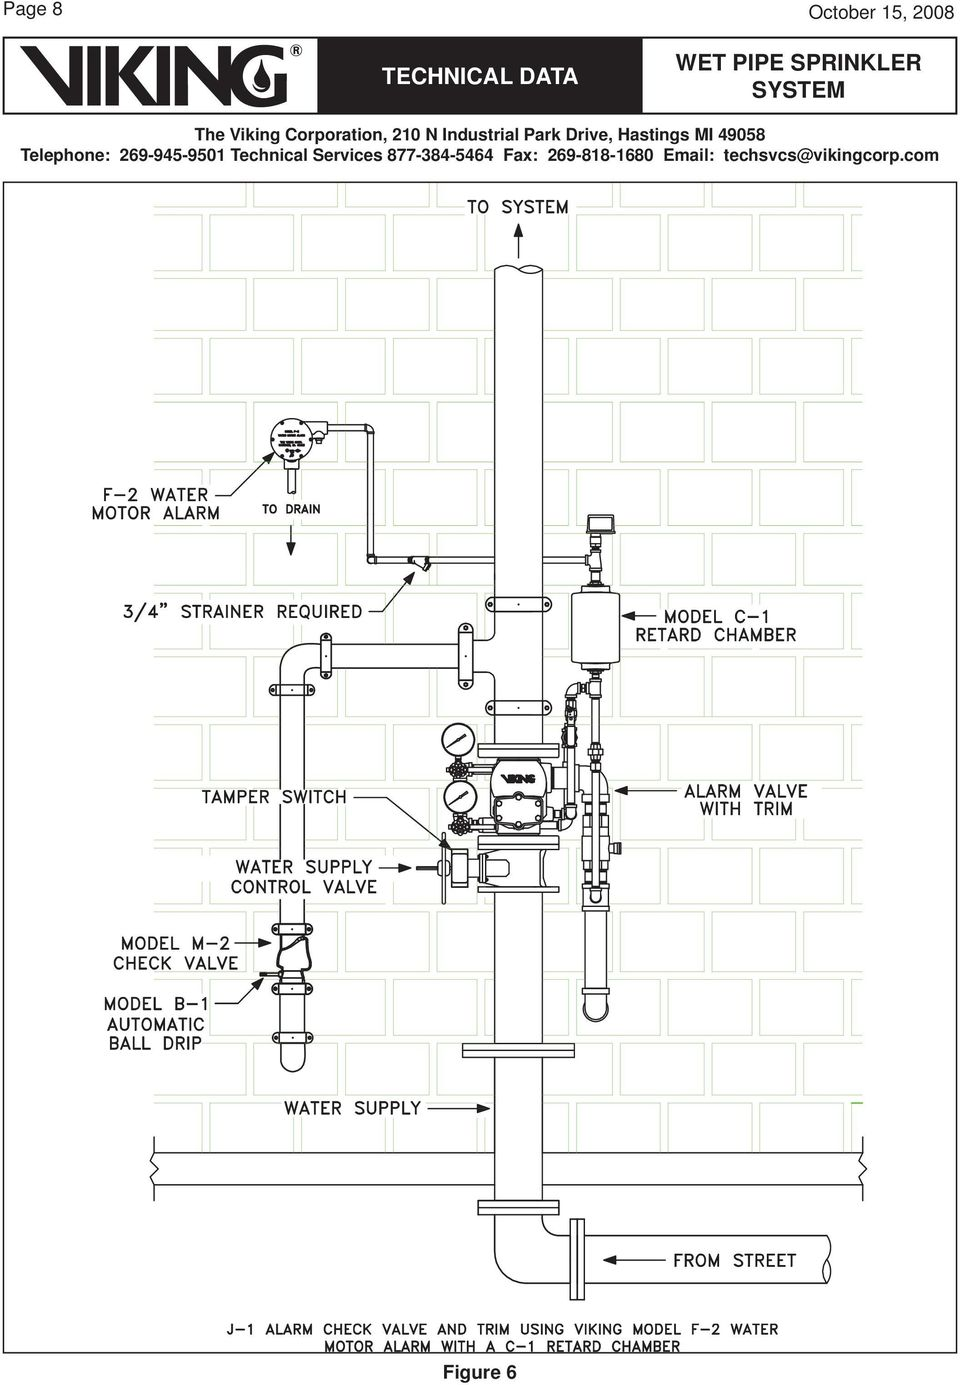 Wet System. Technical Manual for Operation, Maintenance